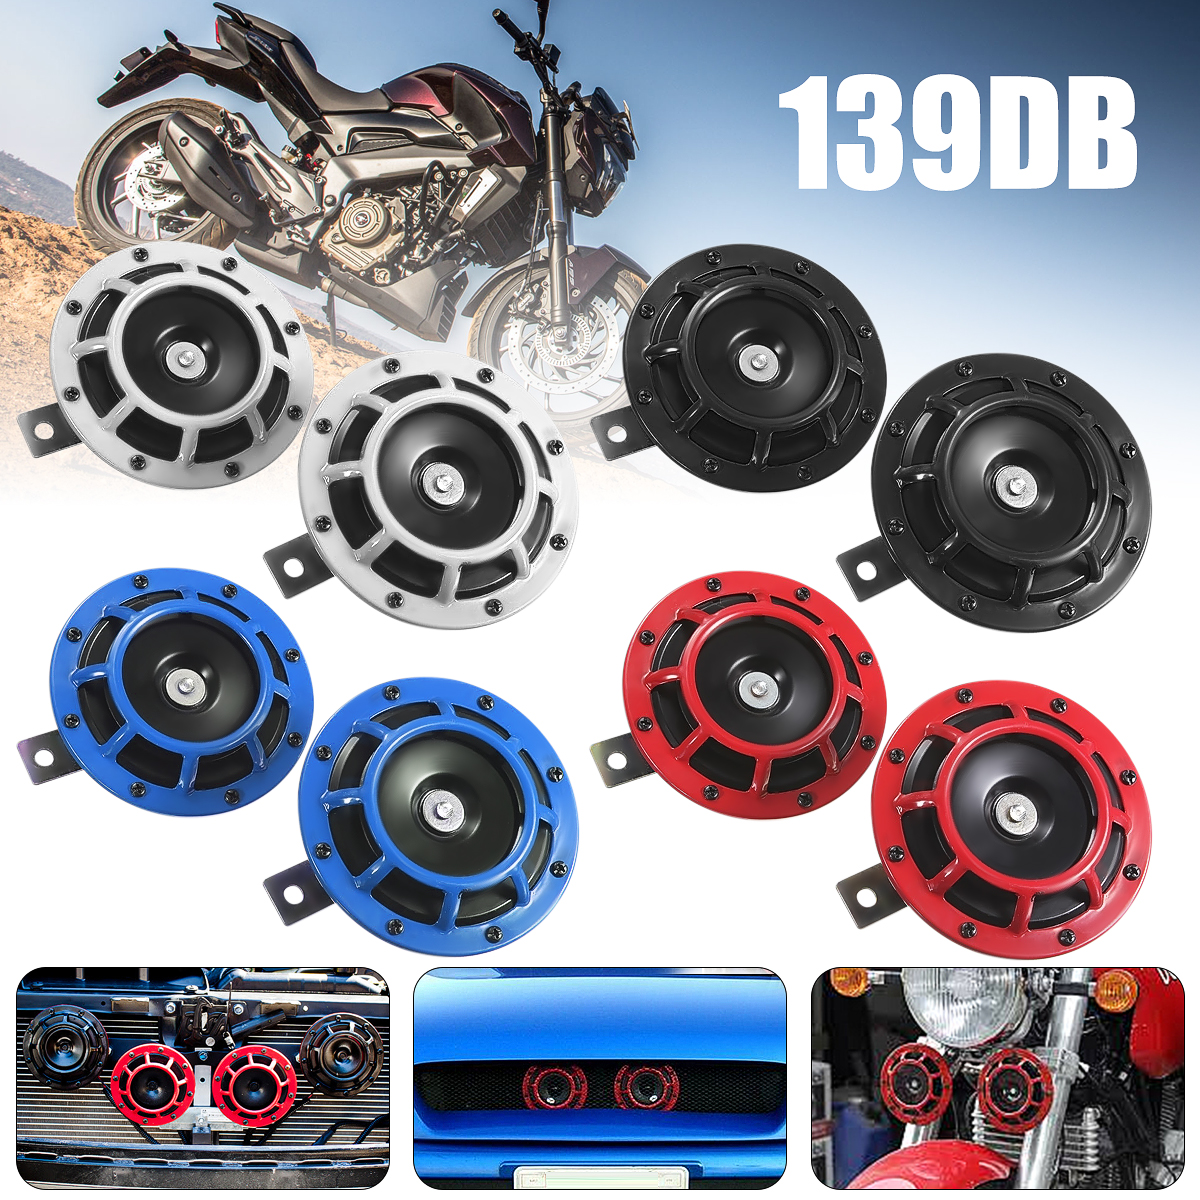 Universal Motorcycle Car Siren Dual Tone Electric Pump Loud Air Horn 12V 139db Off-road Super Loud Compact Electric Blast Tone vodool 12v 125db car motorcycle truck horn compact electric pump air loud horn high quality for motorcycle car truck